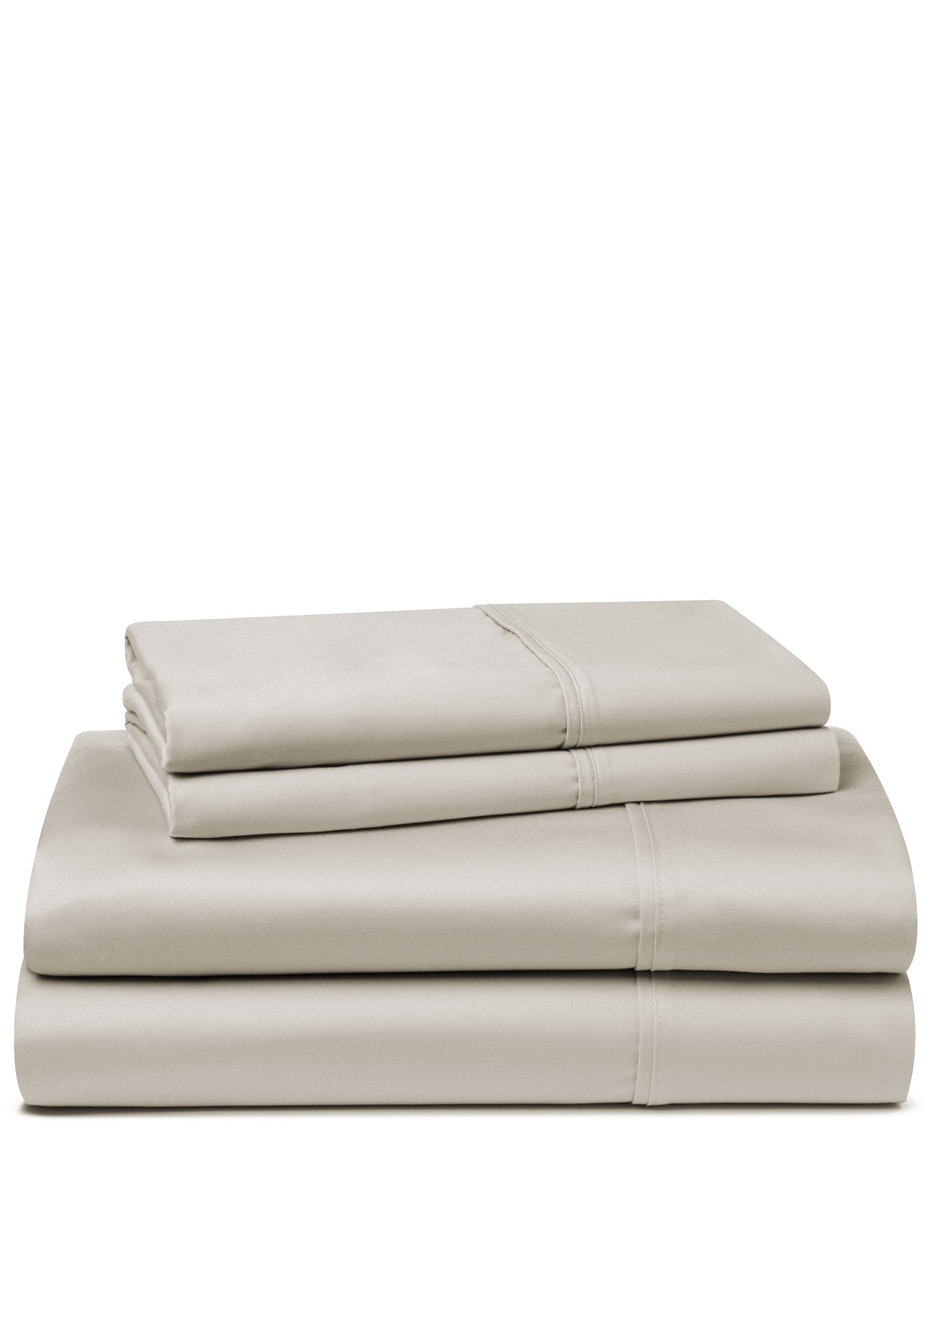 Palazzo Royale 1500TC Premium Blend Sheet Set Queen Bed Suede Blonde